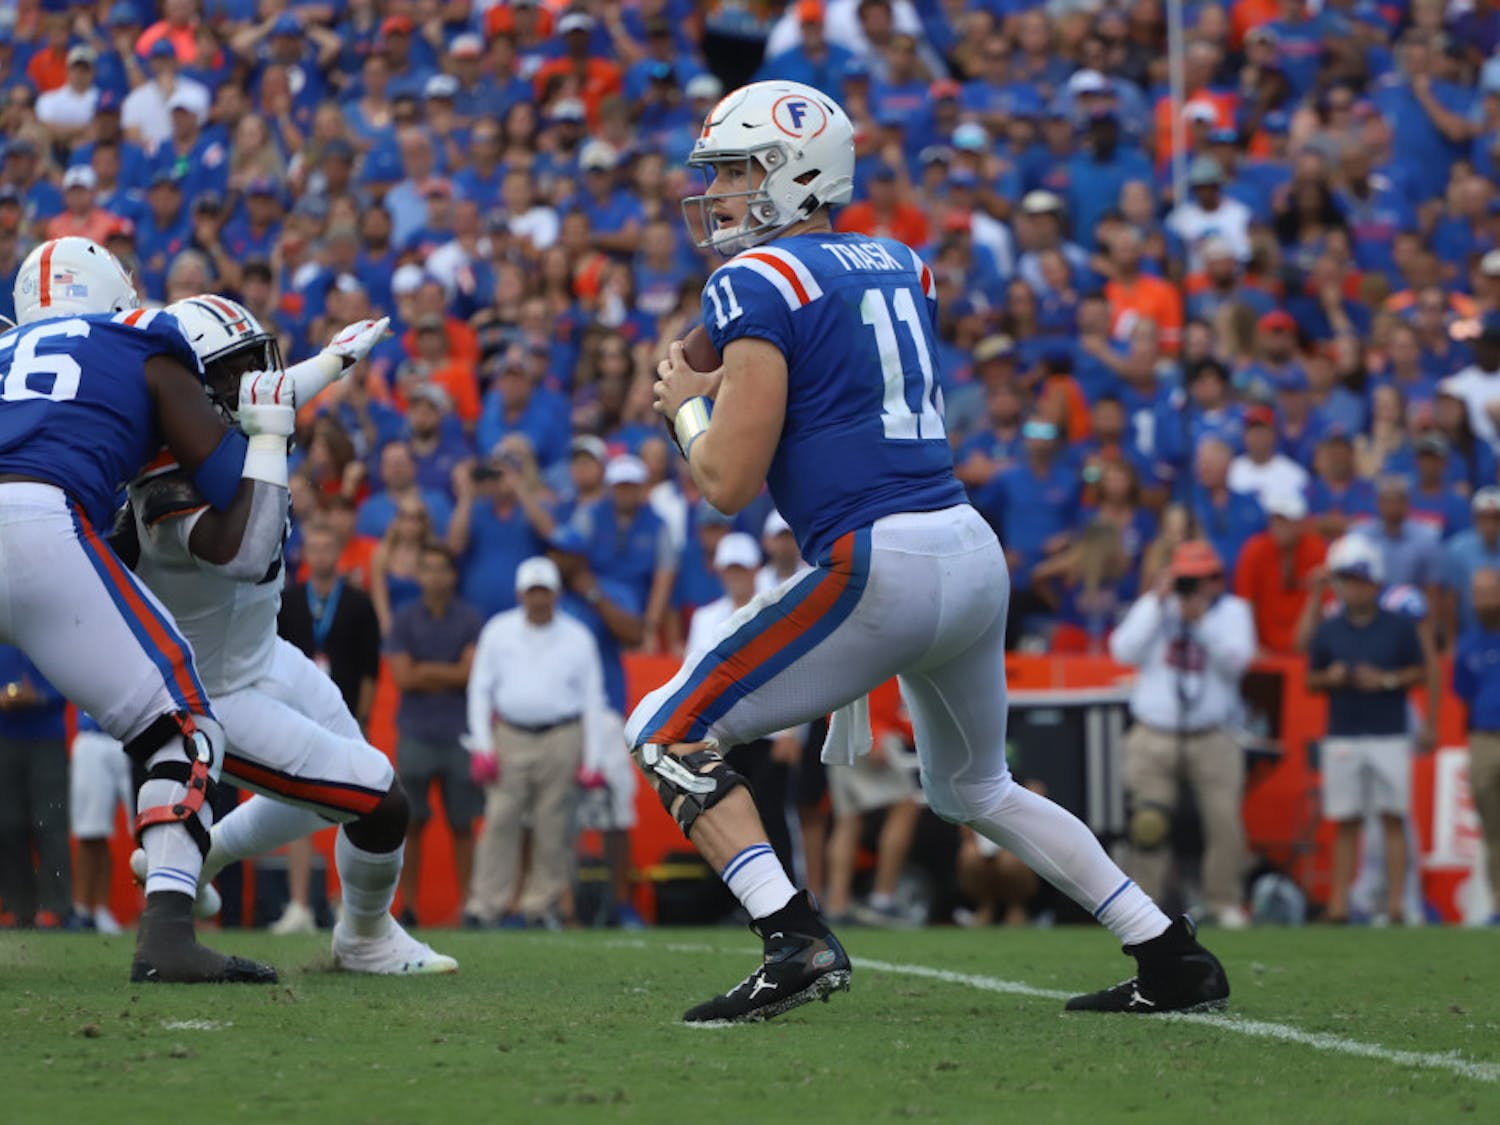 Kyle Trask drops back to pass and scans the field during the Gators' 24-13 win over Auburn last season. Florida's 10-game, conference-only schedule begins on Sept. 26 against Ole Miss.